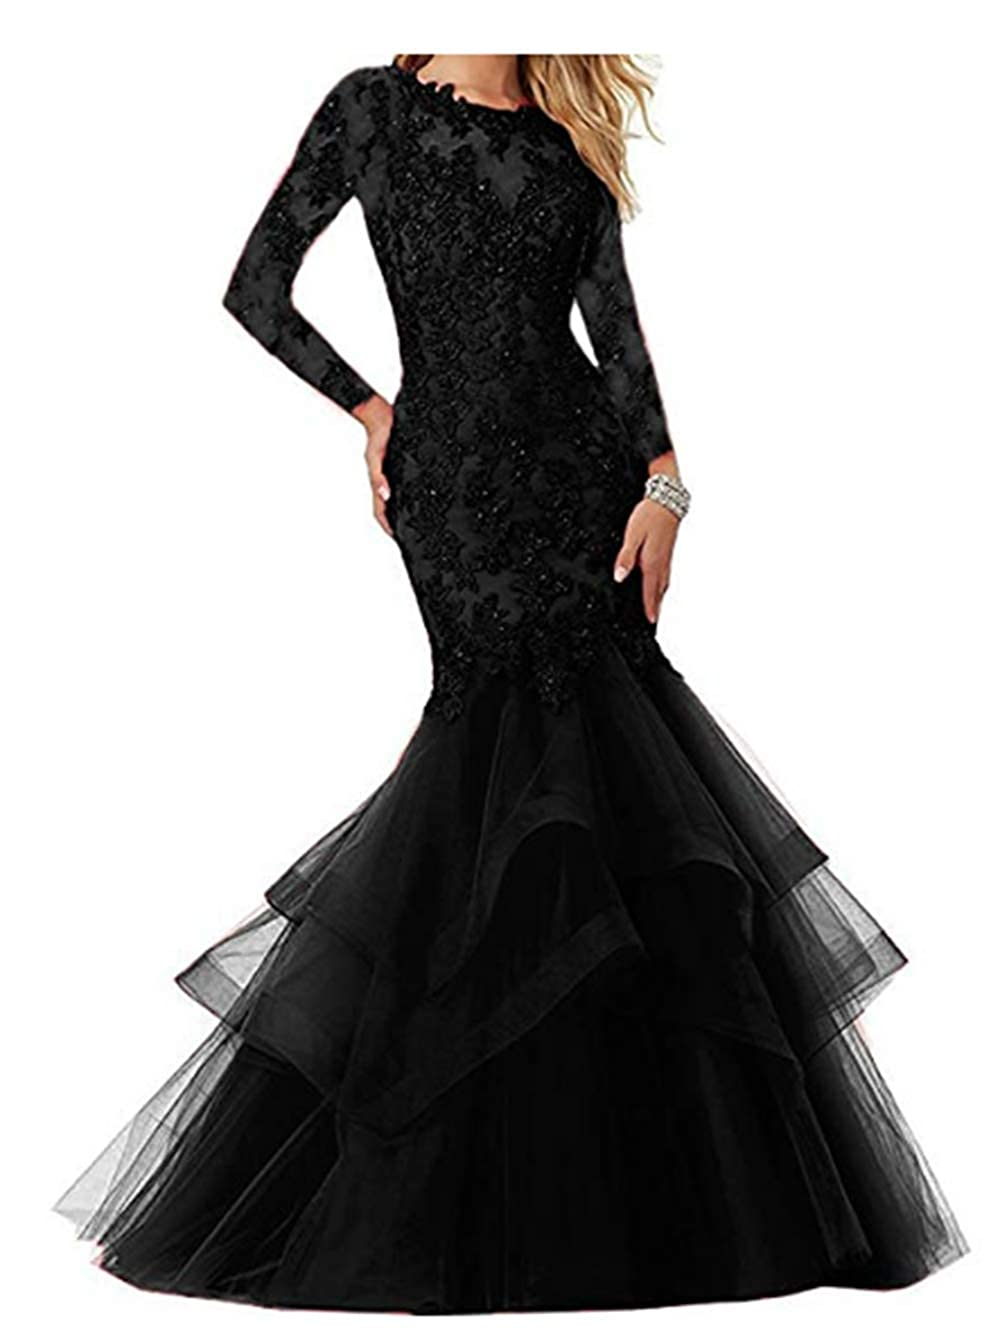 Black FWVR Women's Mermaid Appliques Prom Dresses Long Sleeves Evening Wedding Party Gowns